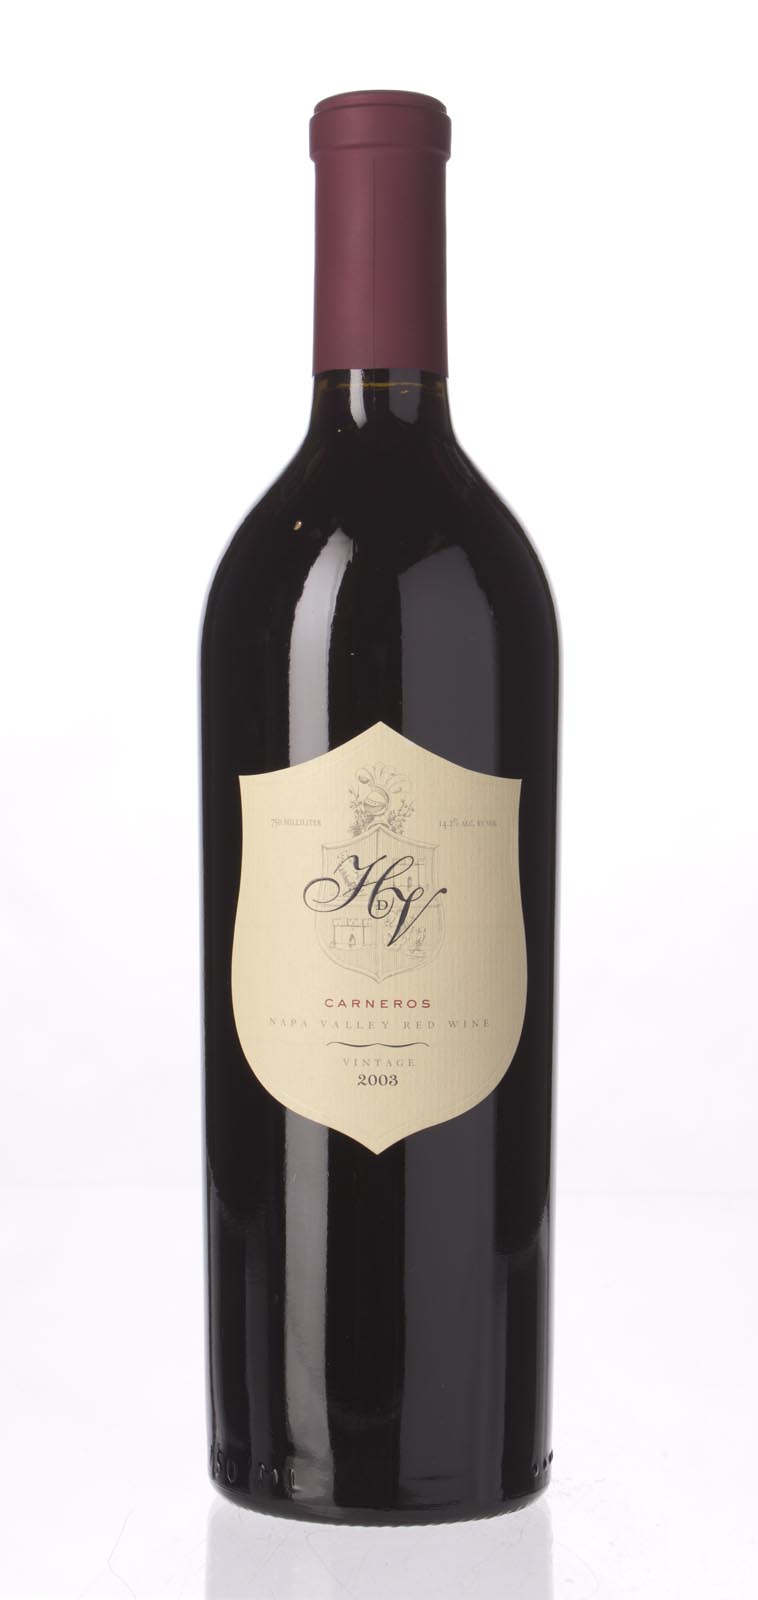 HdV Winery Proprietary Red Carneros 2003, 750mL (ST89) from The BPW - Merchants of rare and fine wines.